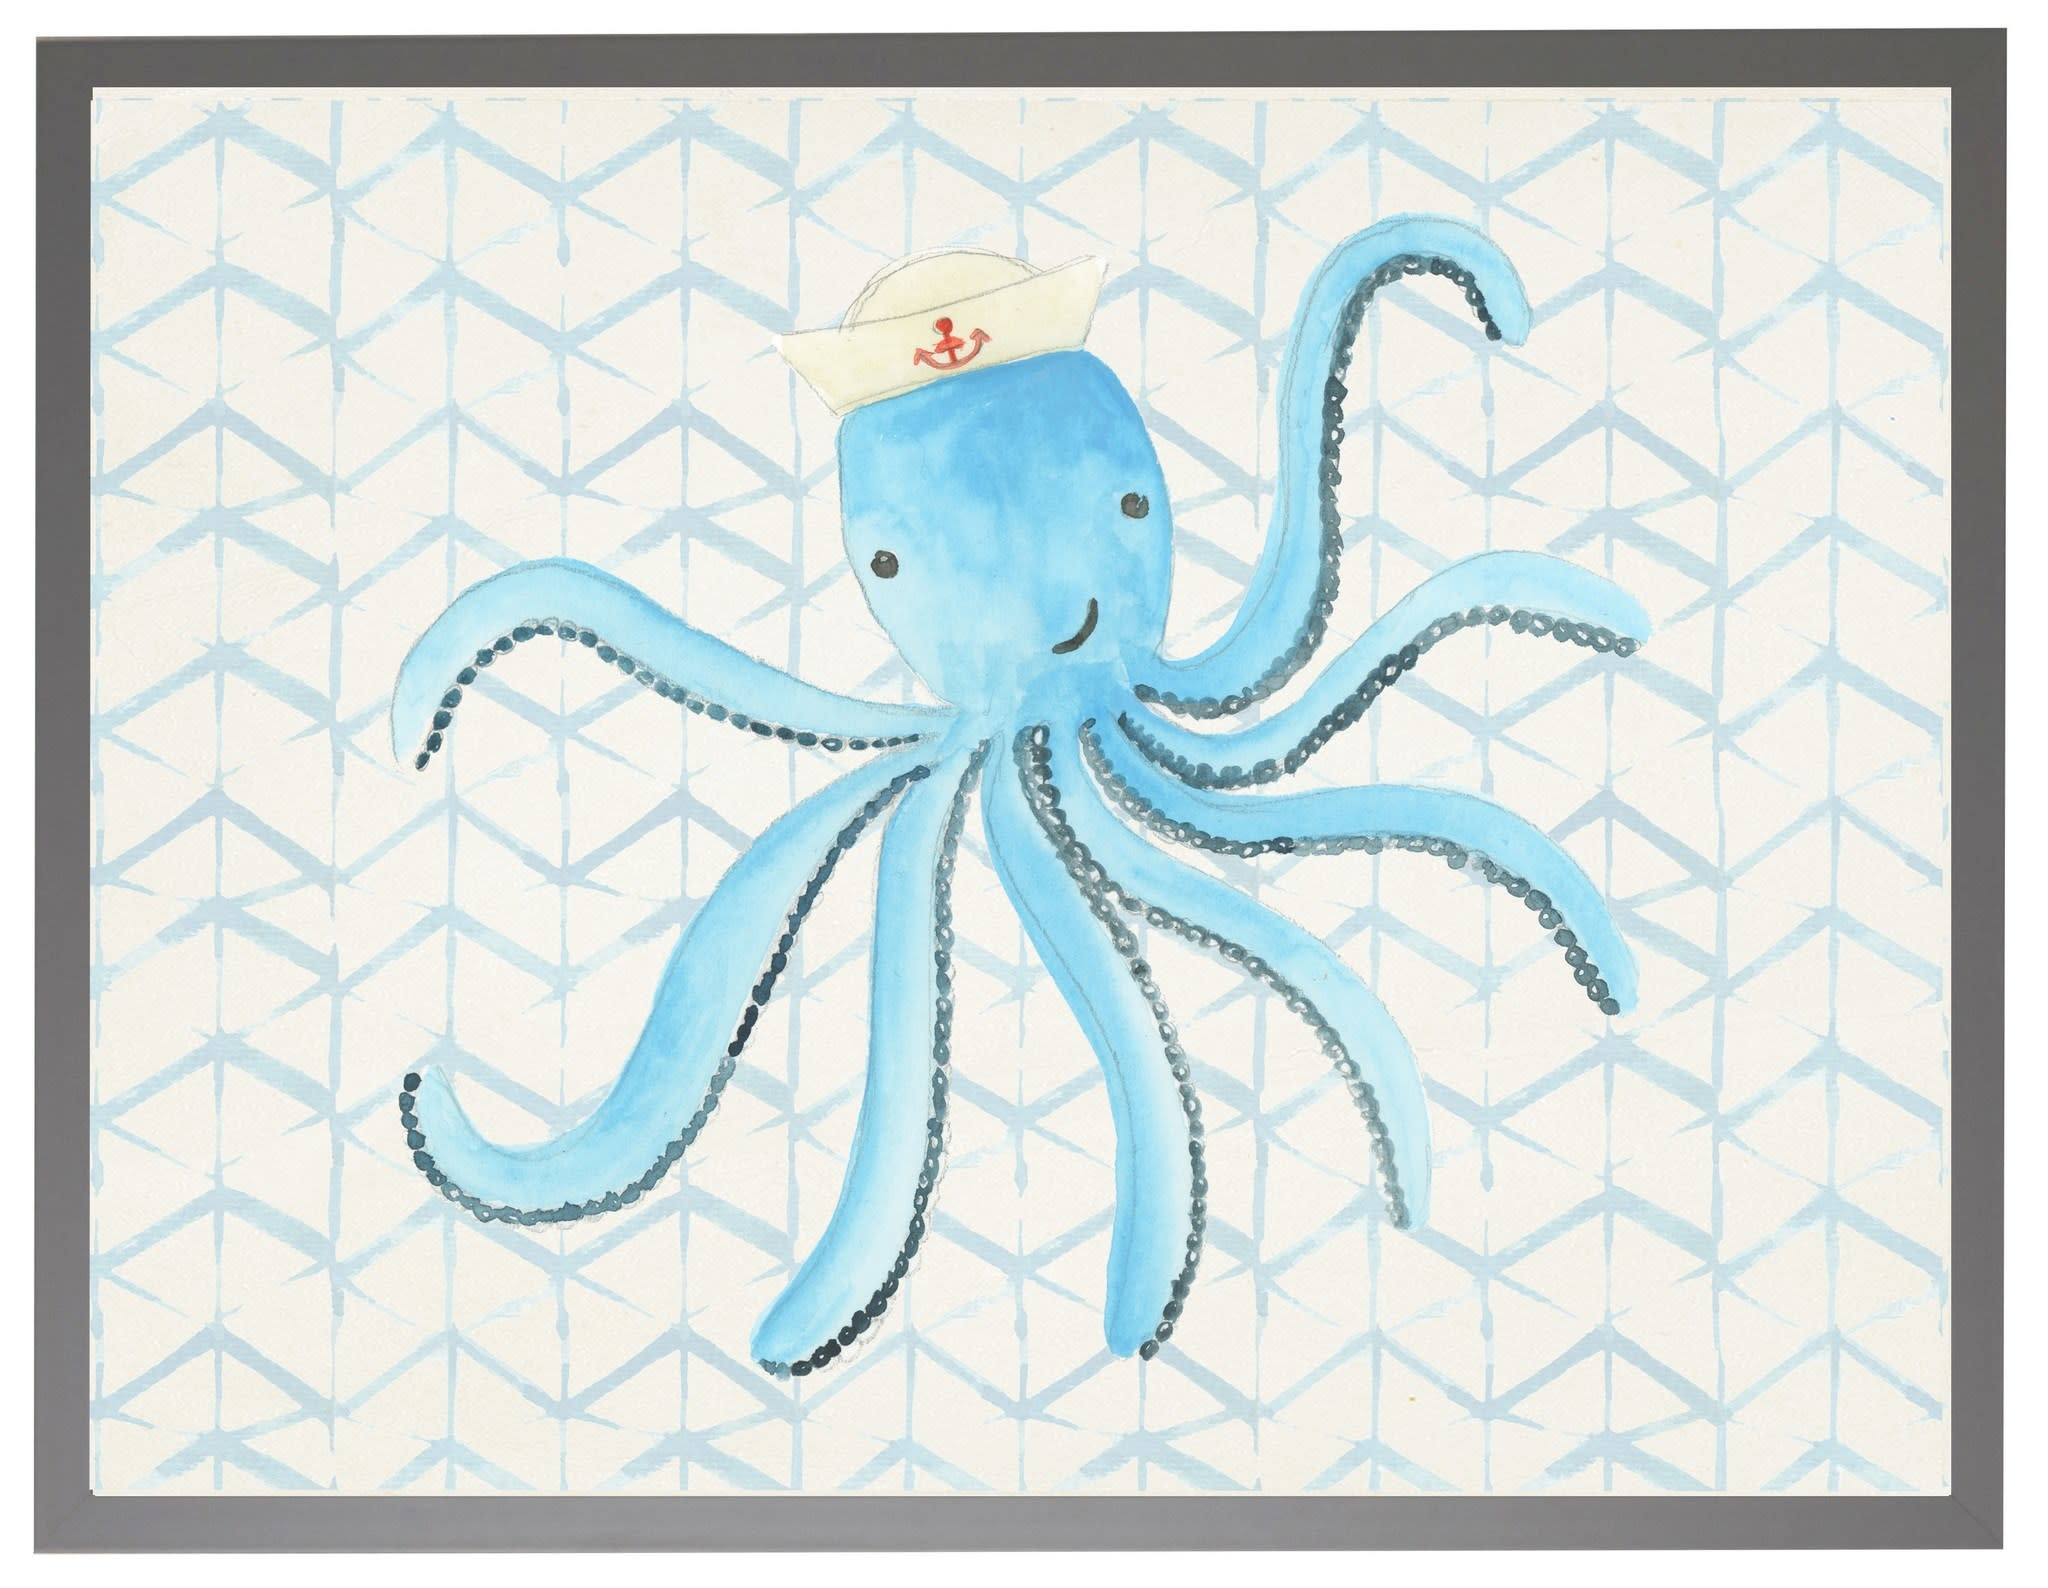 Watercolor Octopus with Sailor Hat with Geometric Background 16x20